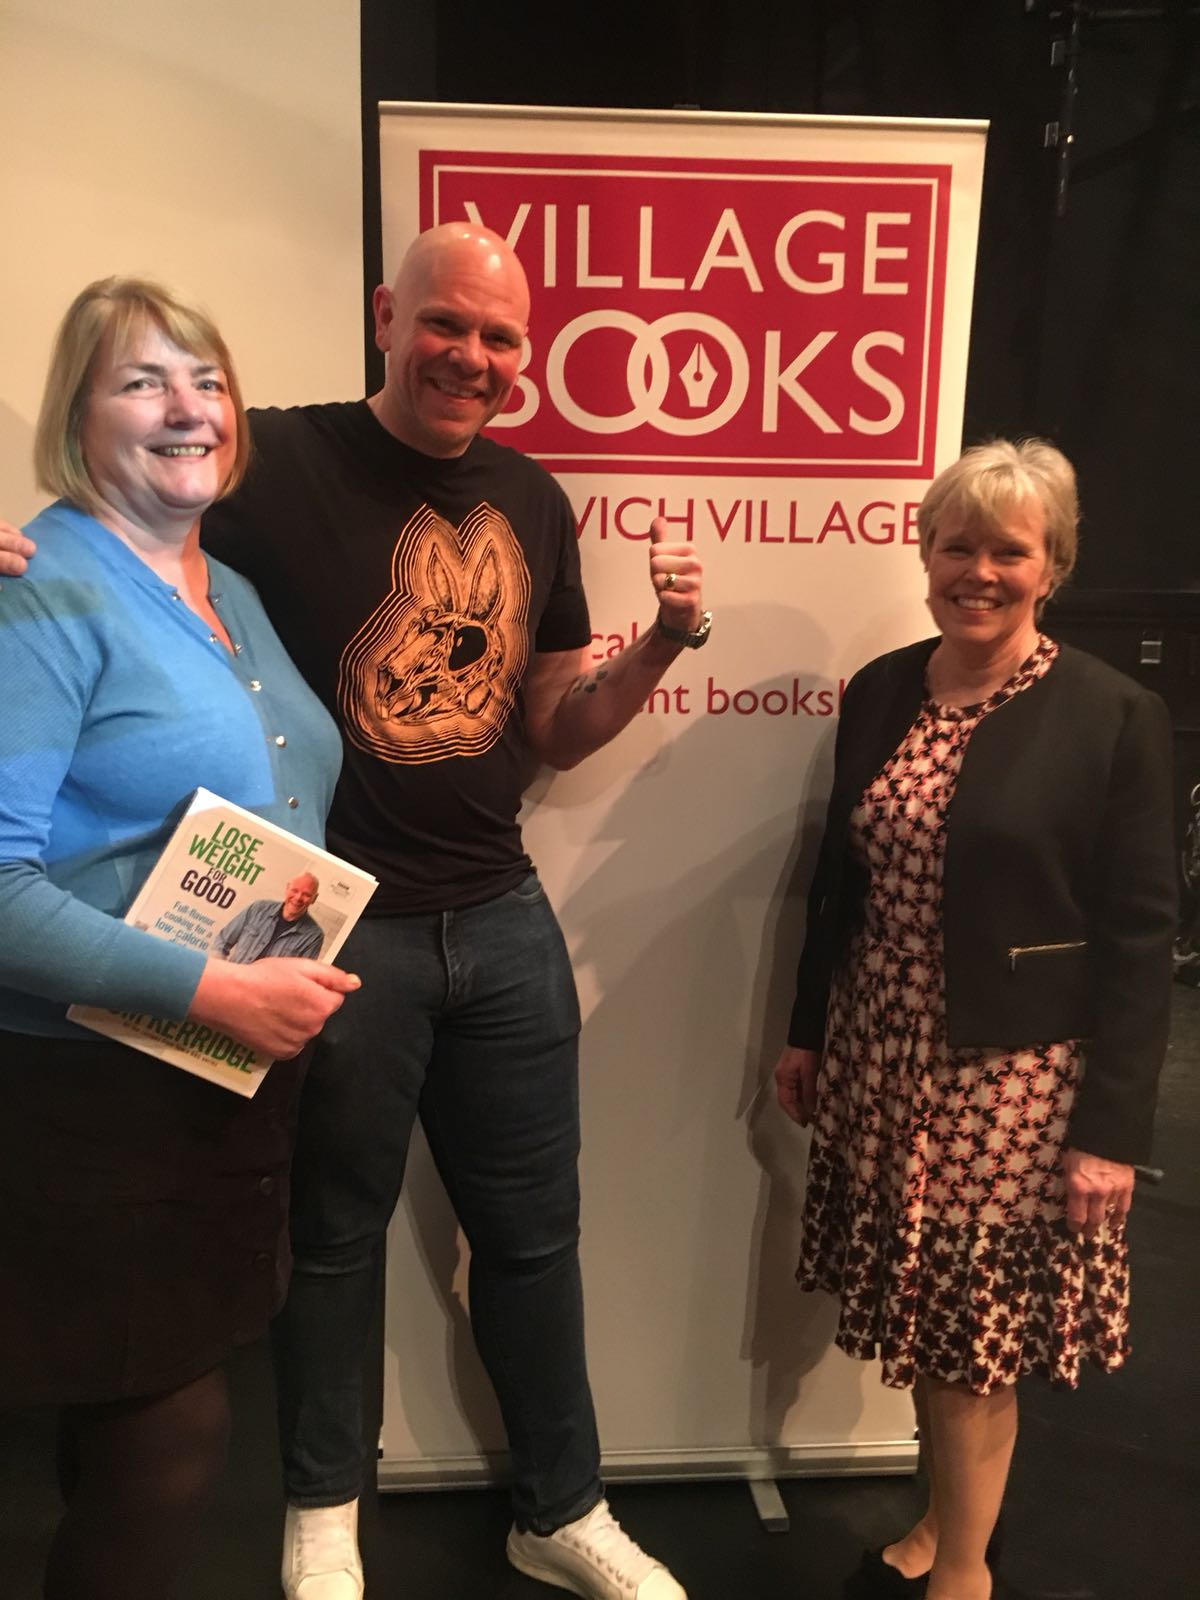 877719255b8 On Tuesday 30 January 2018 Michelin star chef Tom Kerridge talked about how  to cook full flavour meals for a low-calorie diet with a difference.